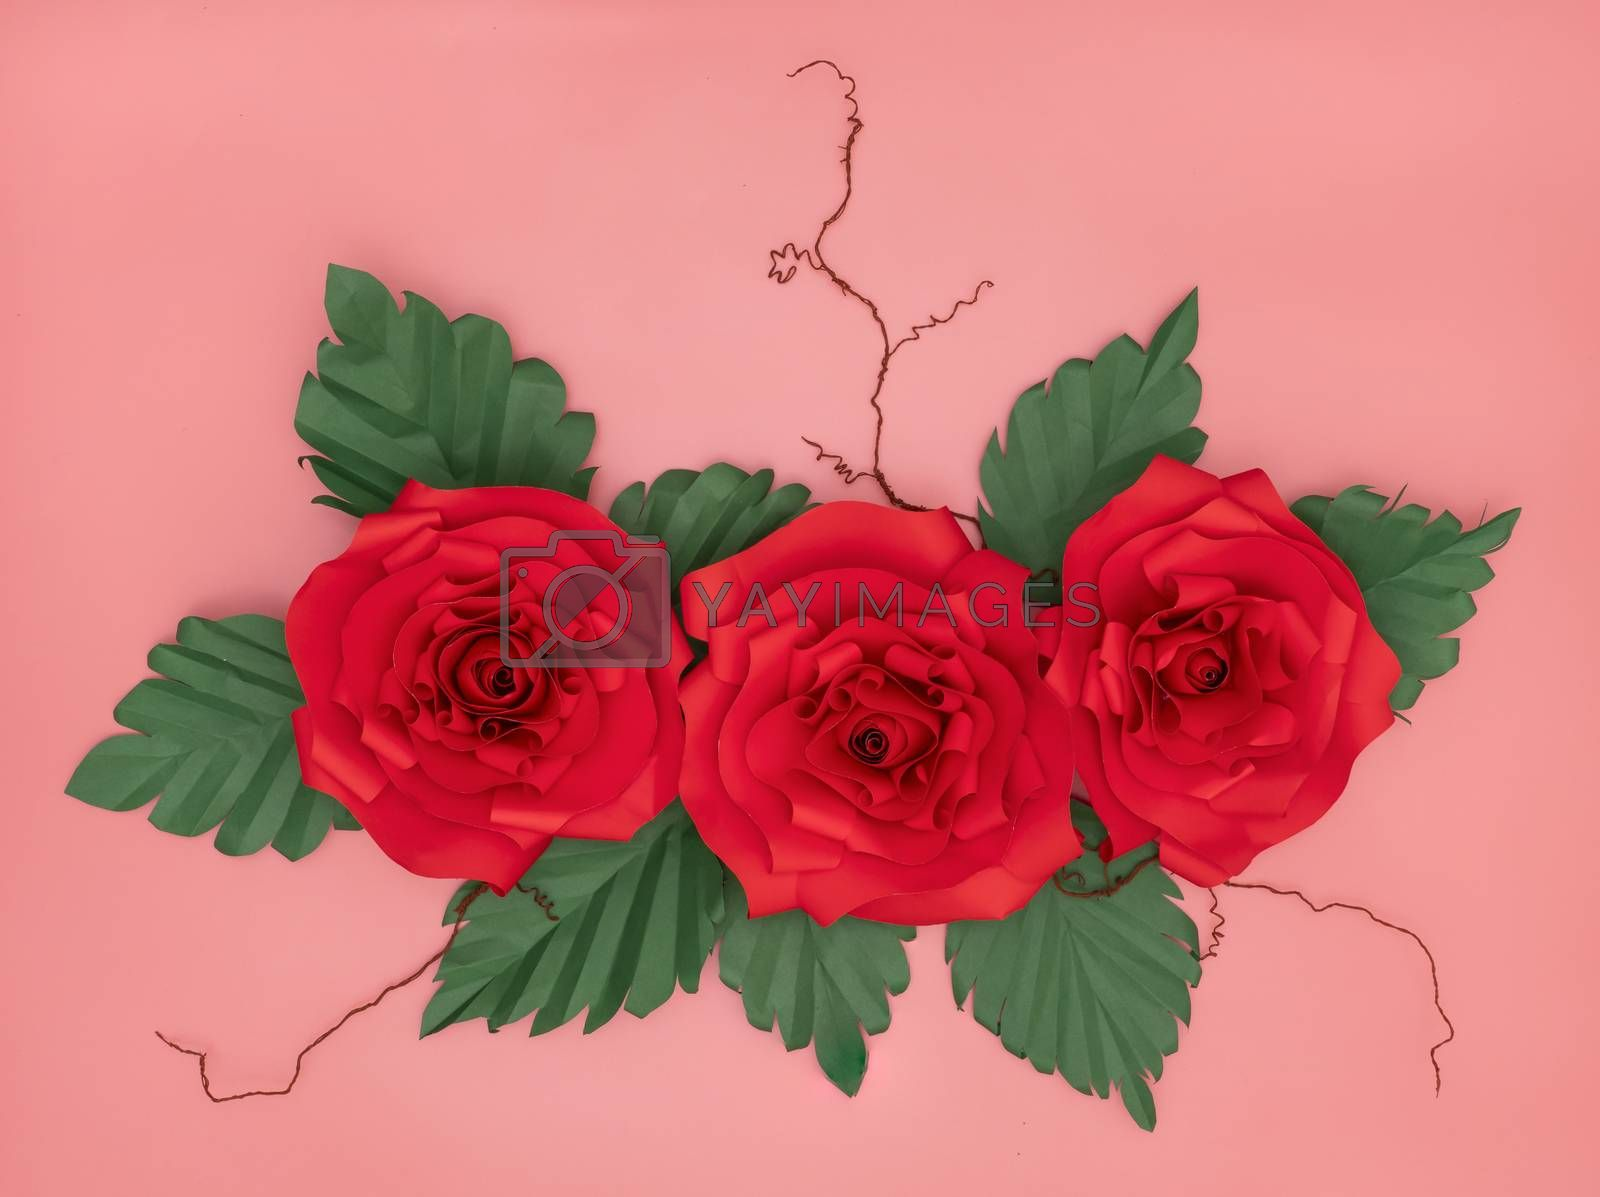 Red paper roses by Nawoot